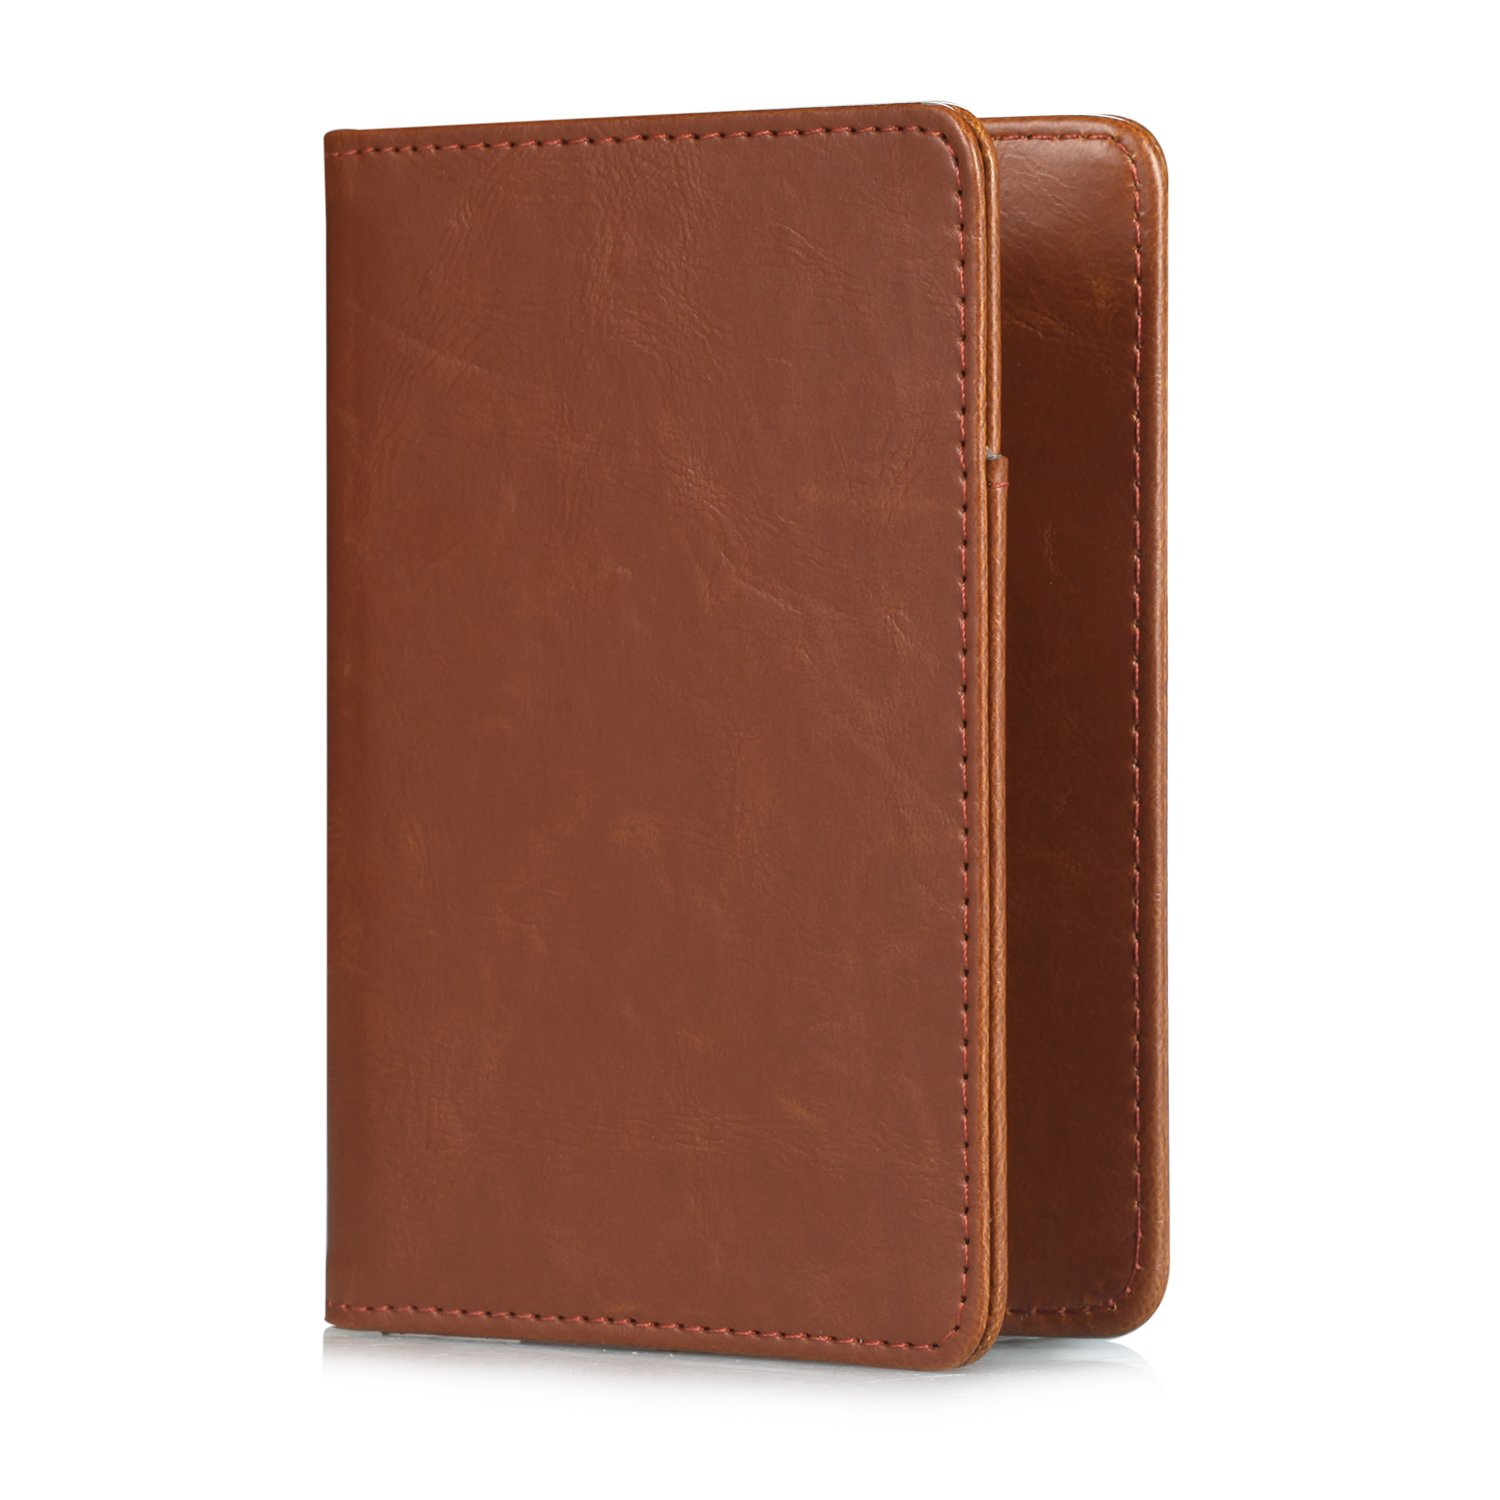 Business Cards Boarding Passes,01 Brown Credit Cards Premium Vegan Leather RFID Blocking Case Cover Securely Holds Passport Anvas Passport Holder Travel Wallet